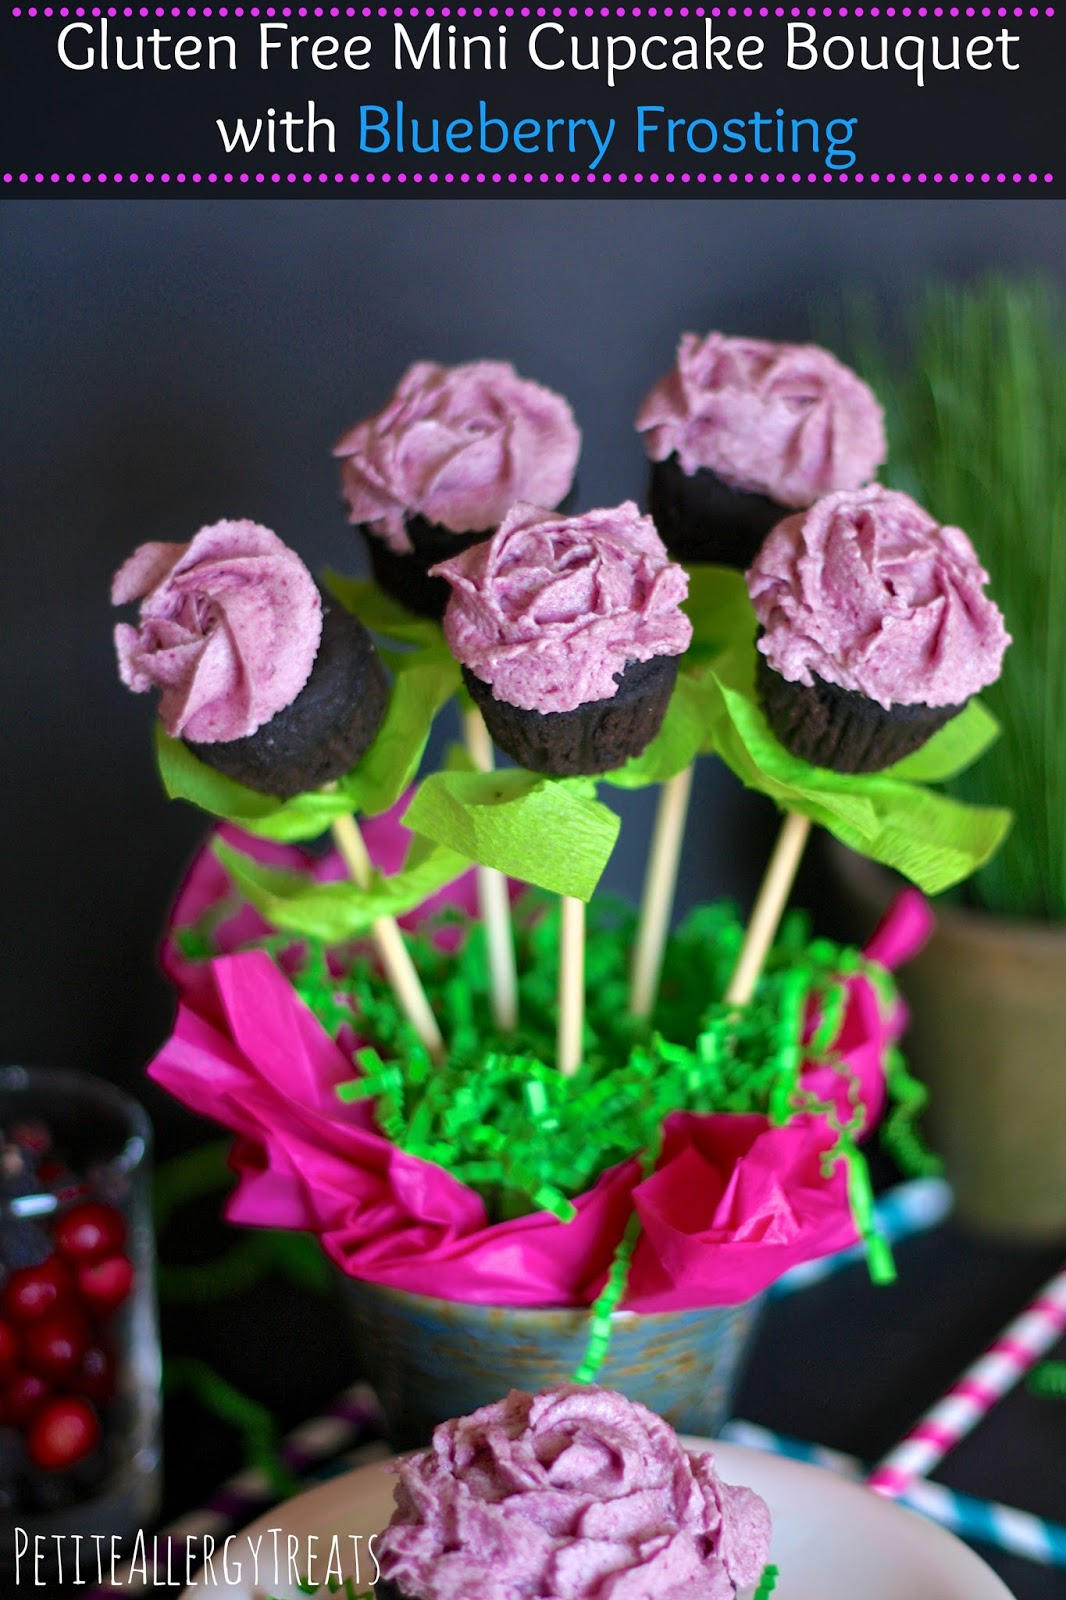 a bouquet of mini cupcakes decorated like flowers with blueberry frosting